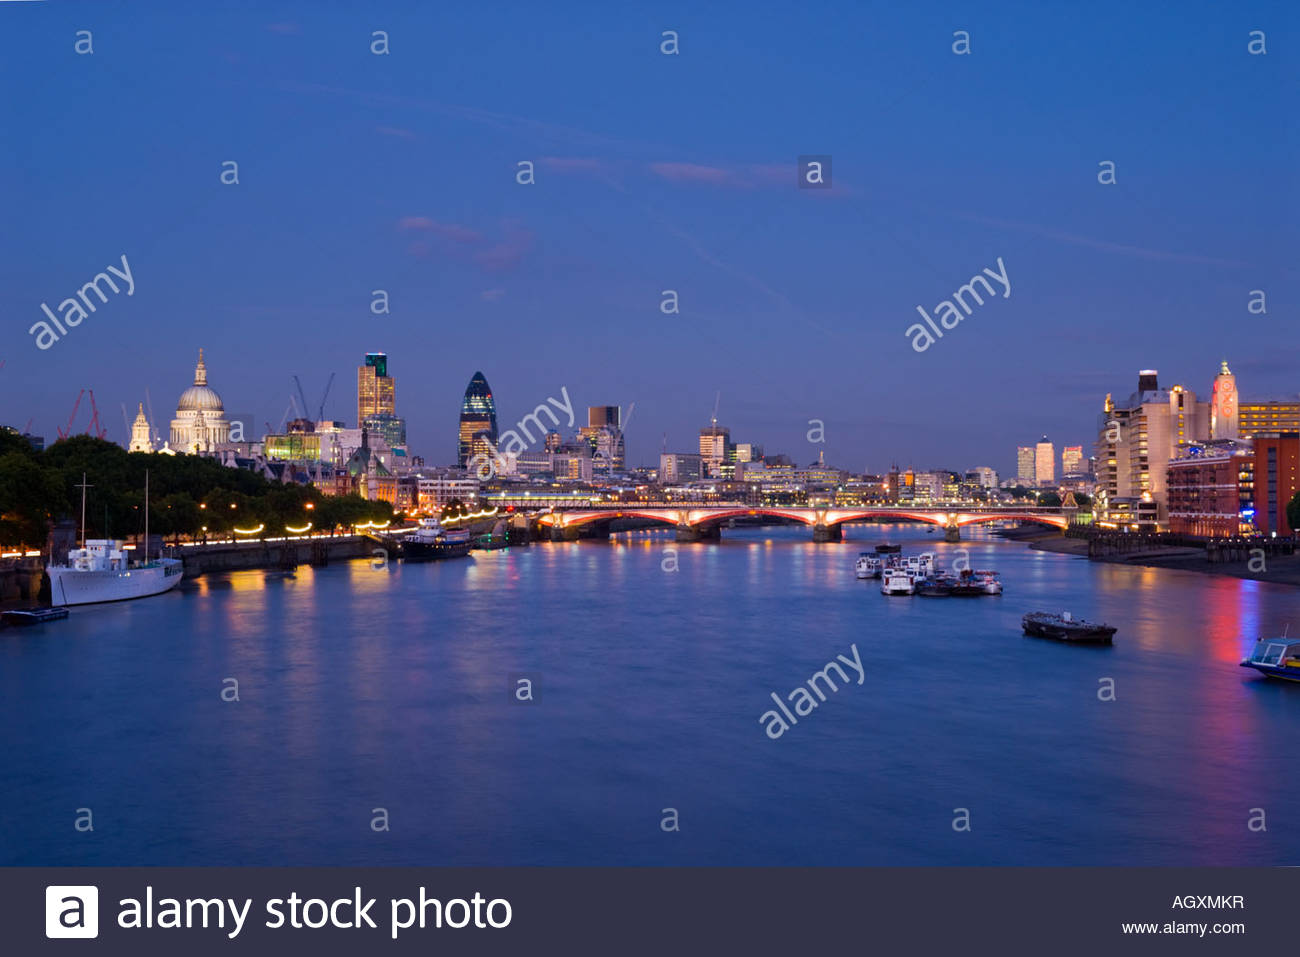 The City of London and the river Thames, London, England. - Stock Image